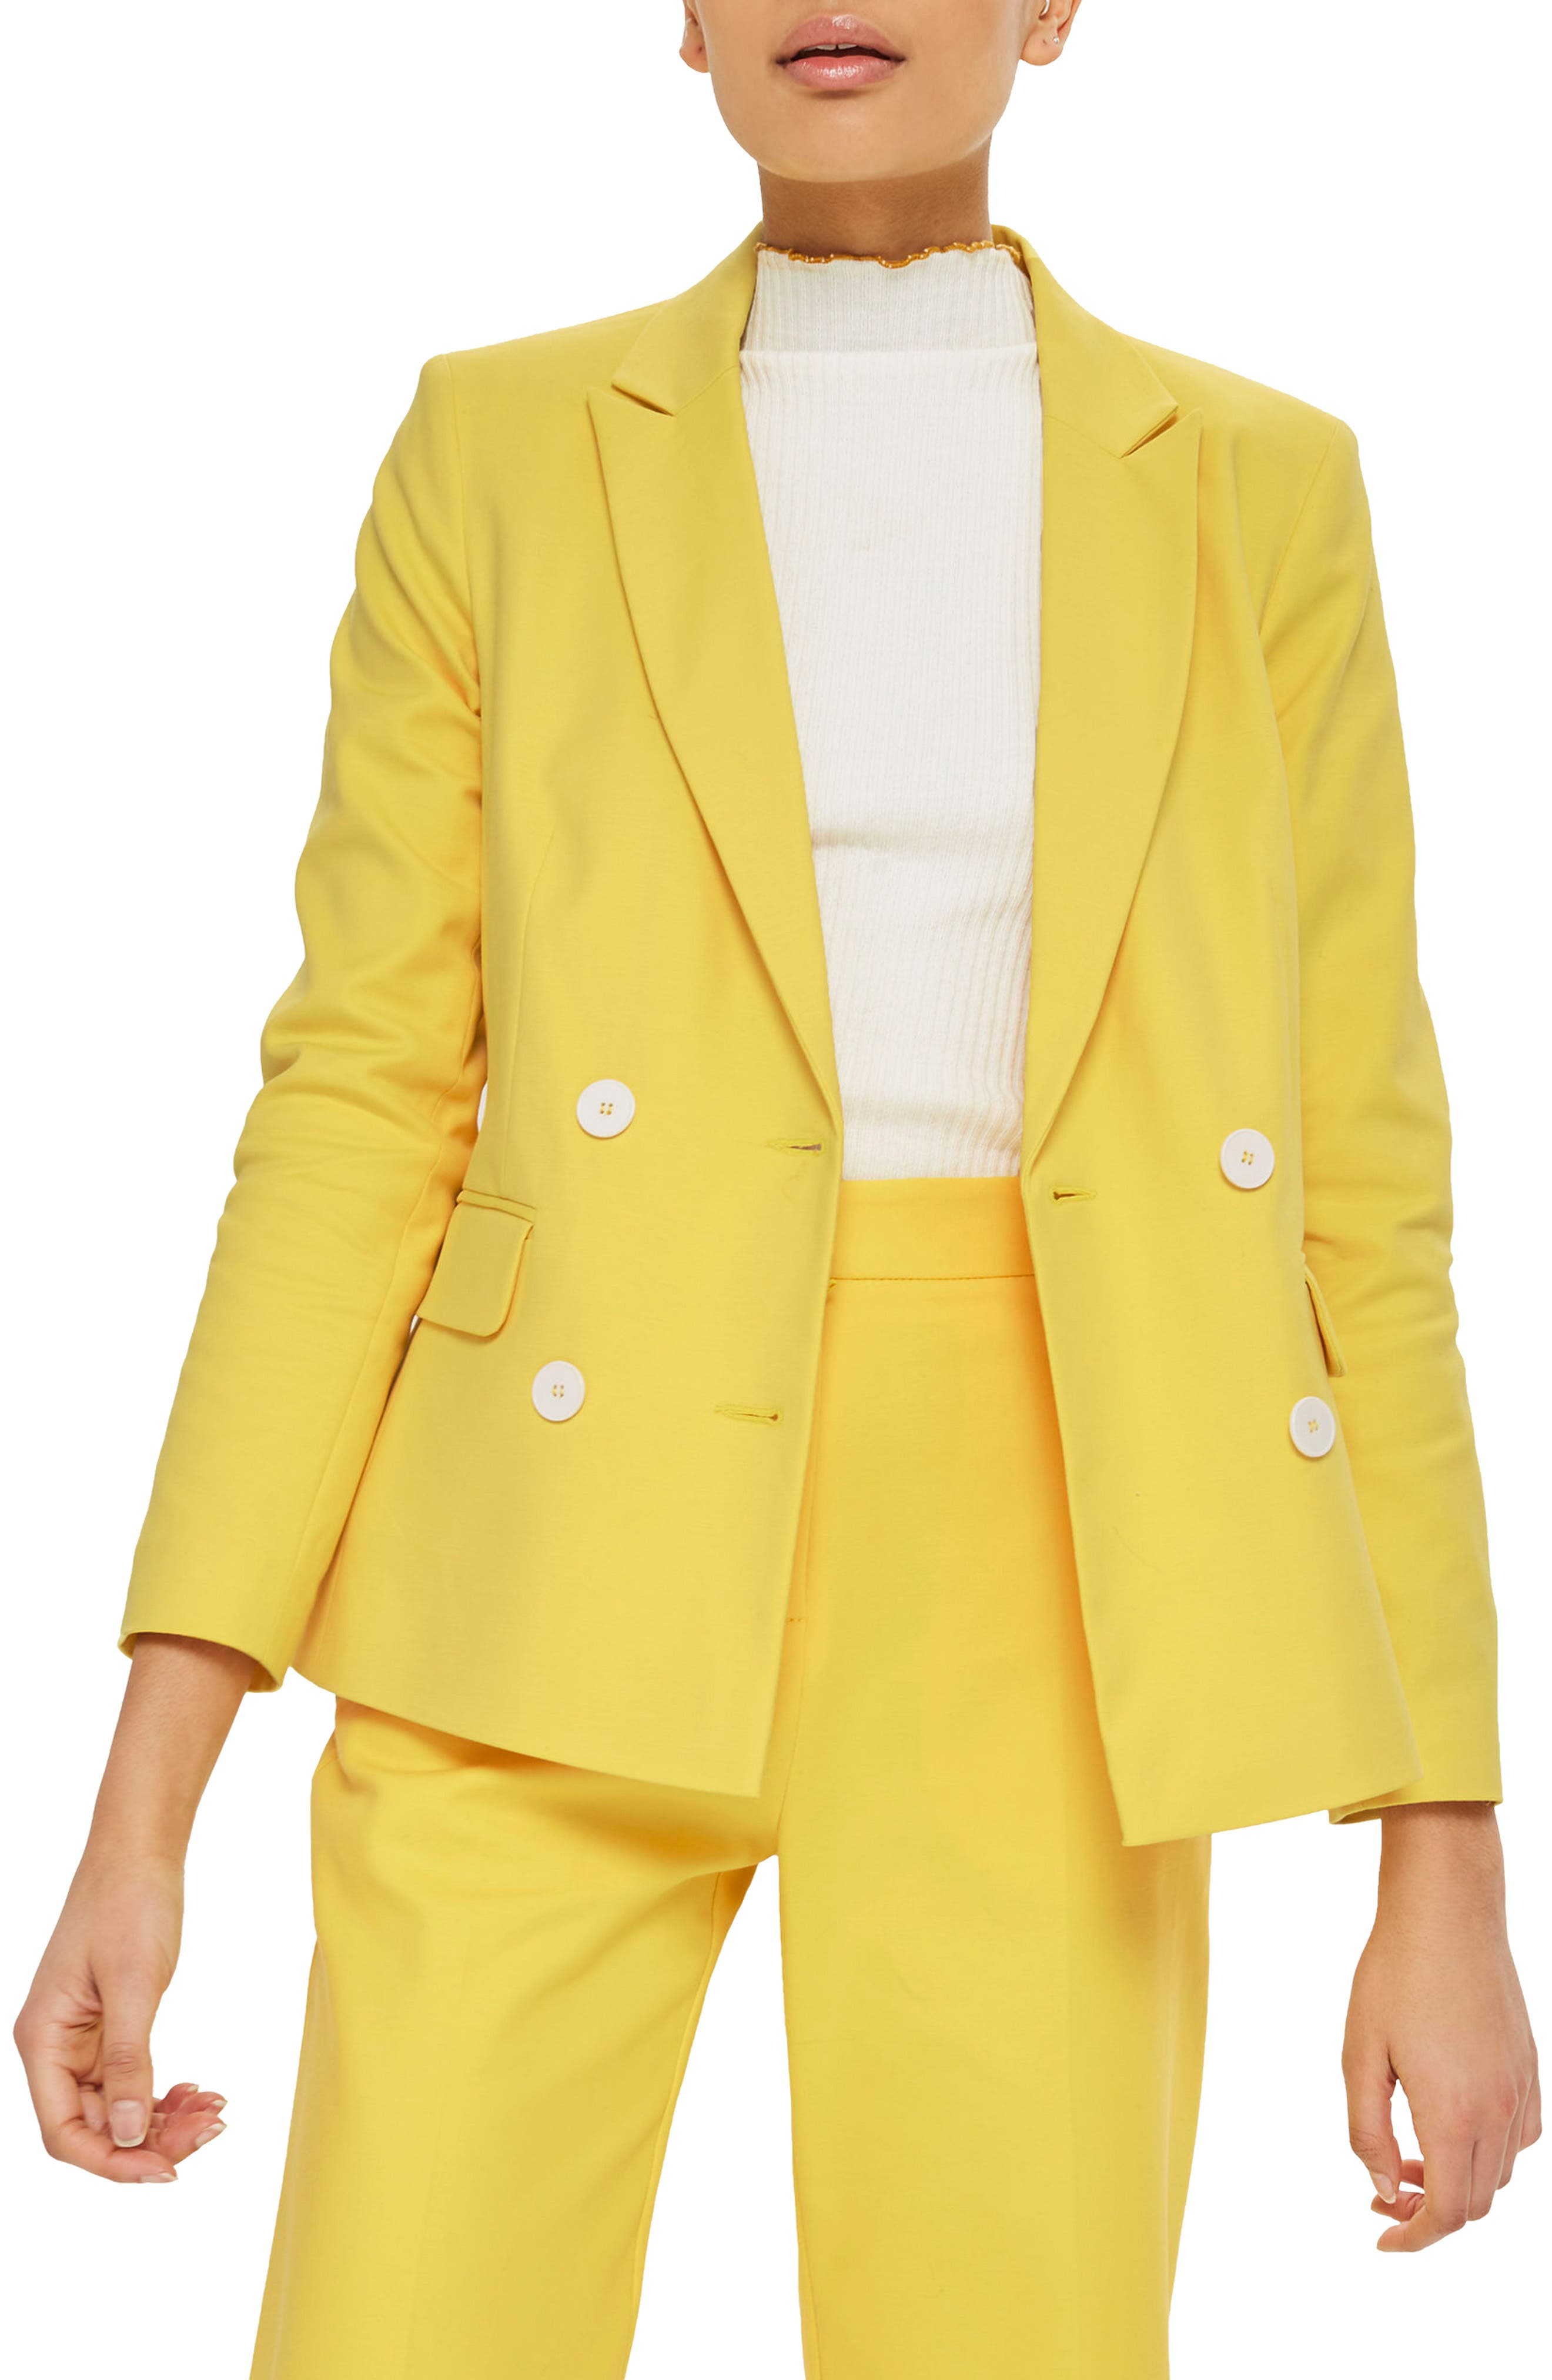 Milly Double Breasted Suit Jacket,                         Main,                         color, 700